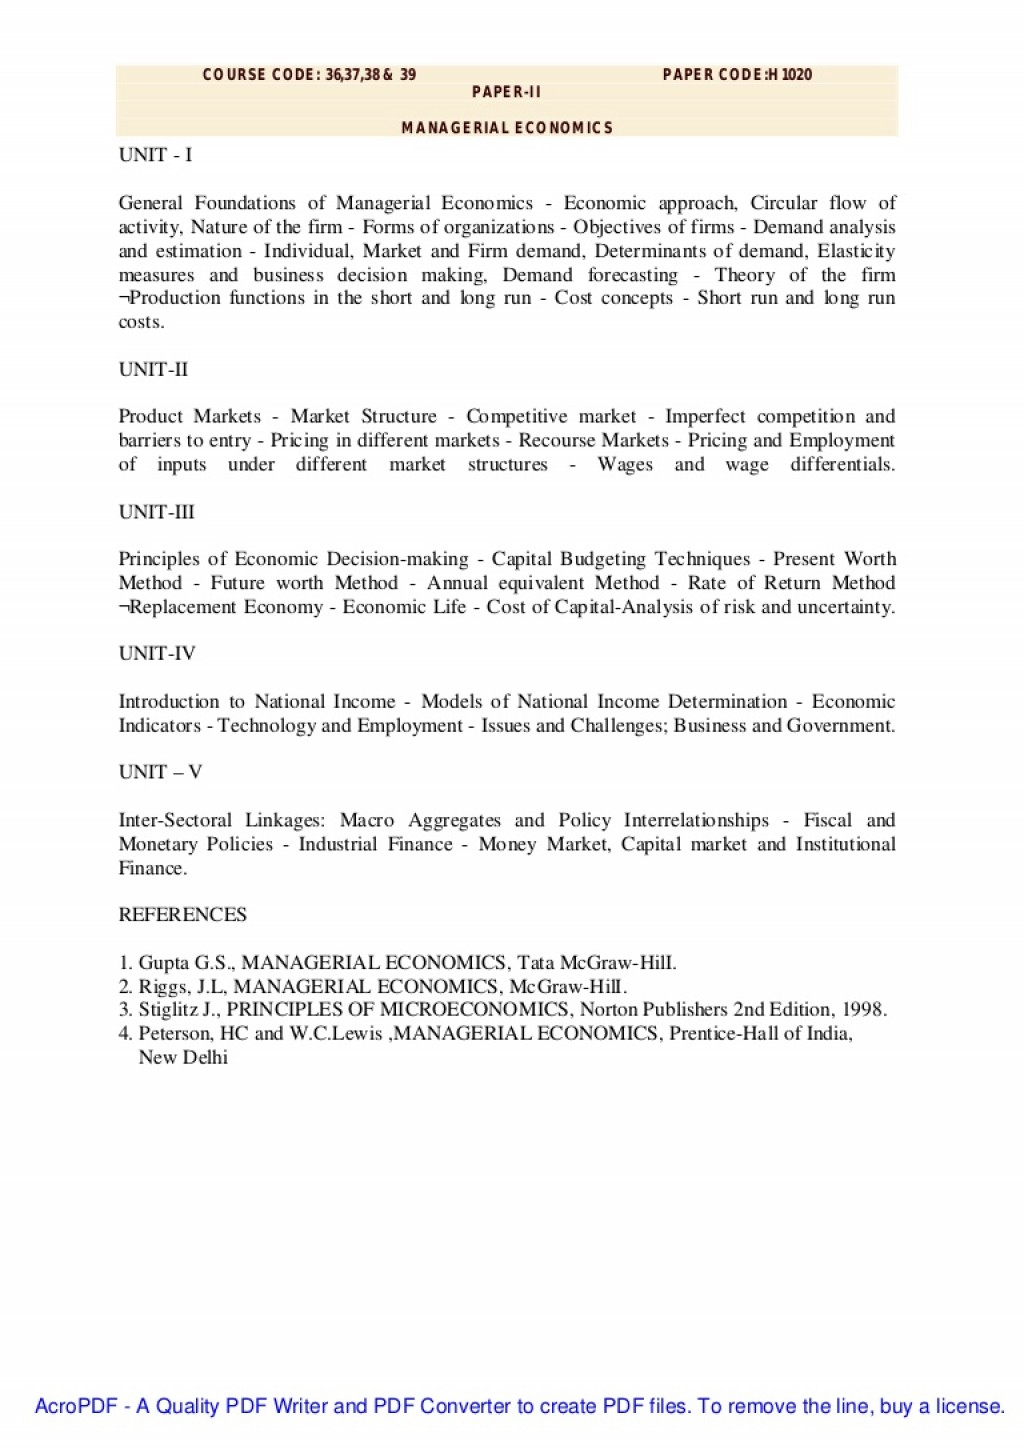 001 Research Paper Managerialeconomics Phpapp02 Thumbnail Managerial Economic Imposing Topics Large